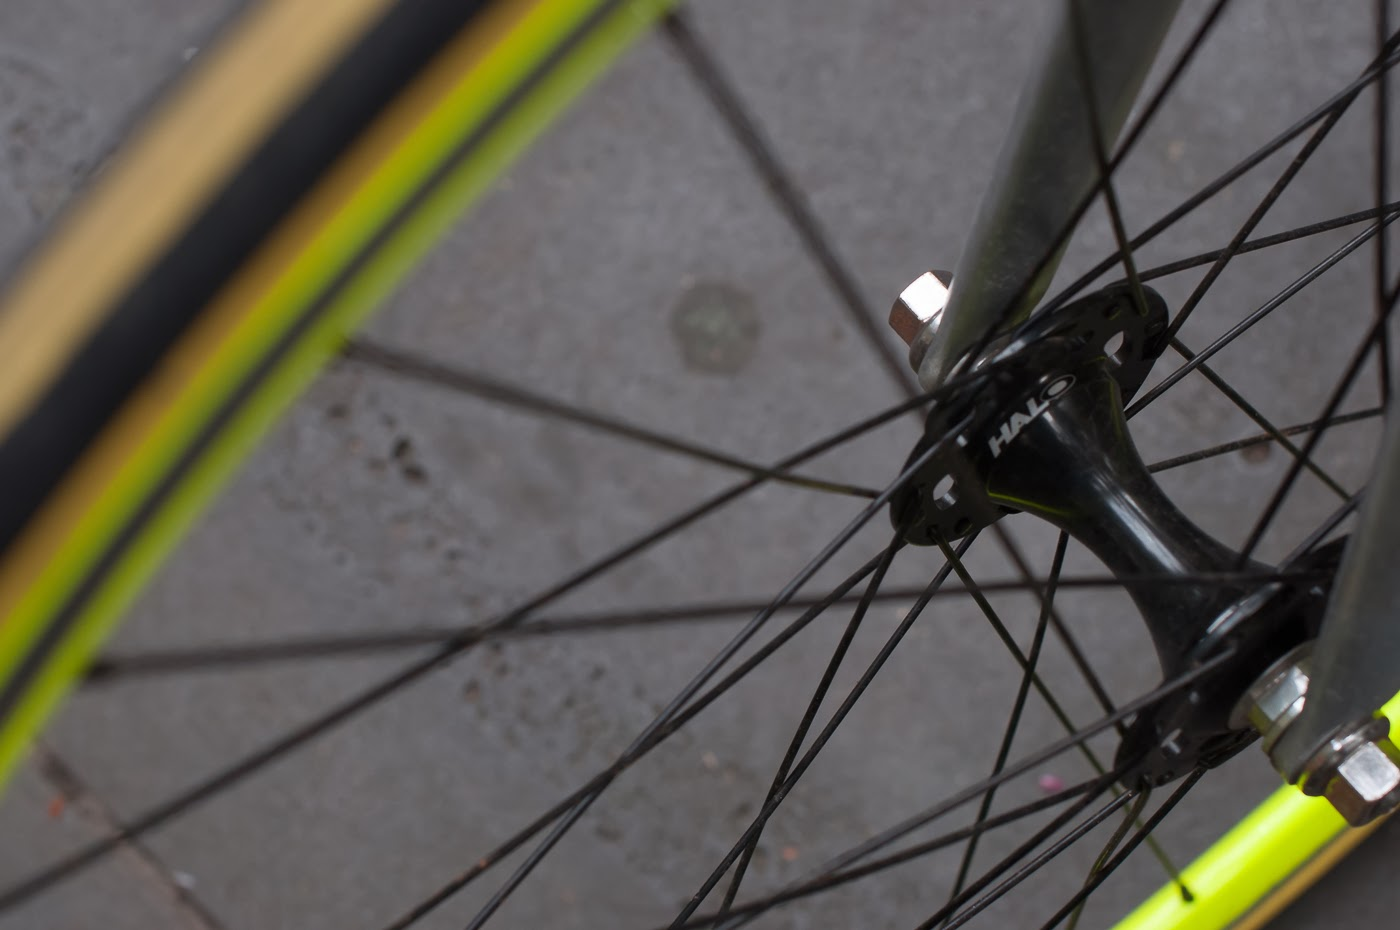 single speed, bike, bicycle, tim macauley, the biketorialist, melbourne, road bike, conversion,  custom, swanston St, giant, tcr,  wheel, lime green, hub, front wheel